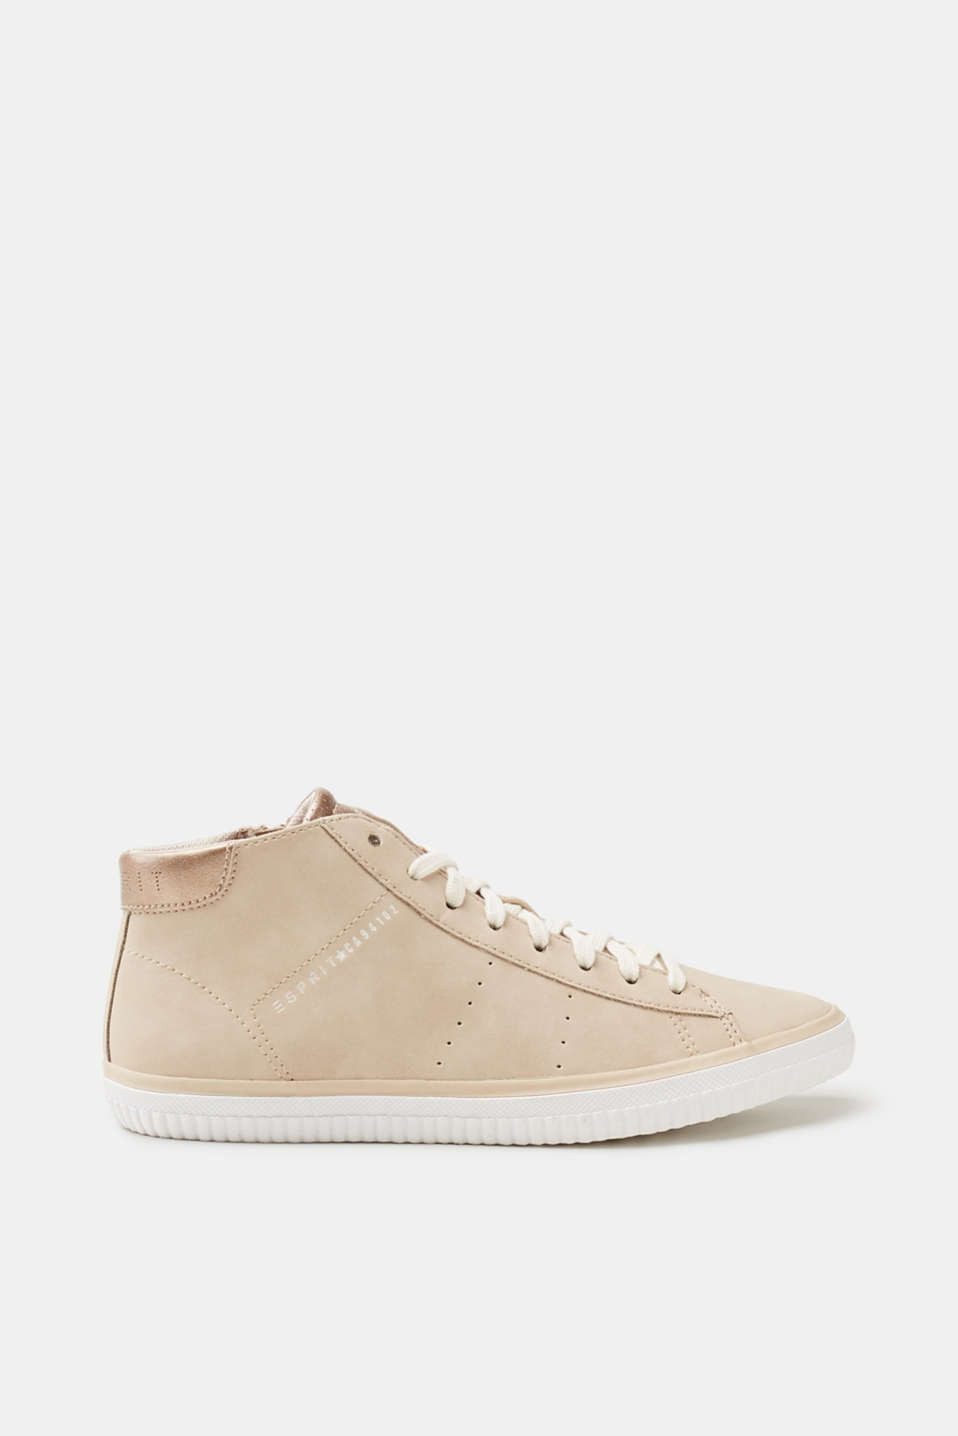 Esprit - Ankle-high trainers in faux leather